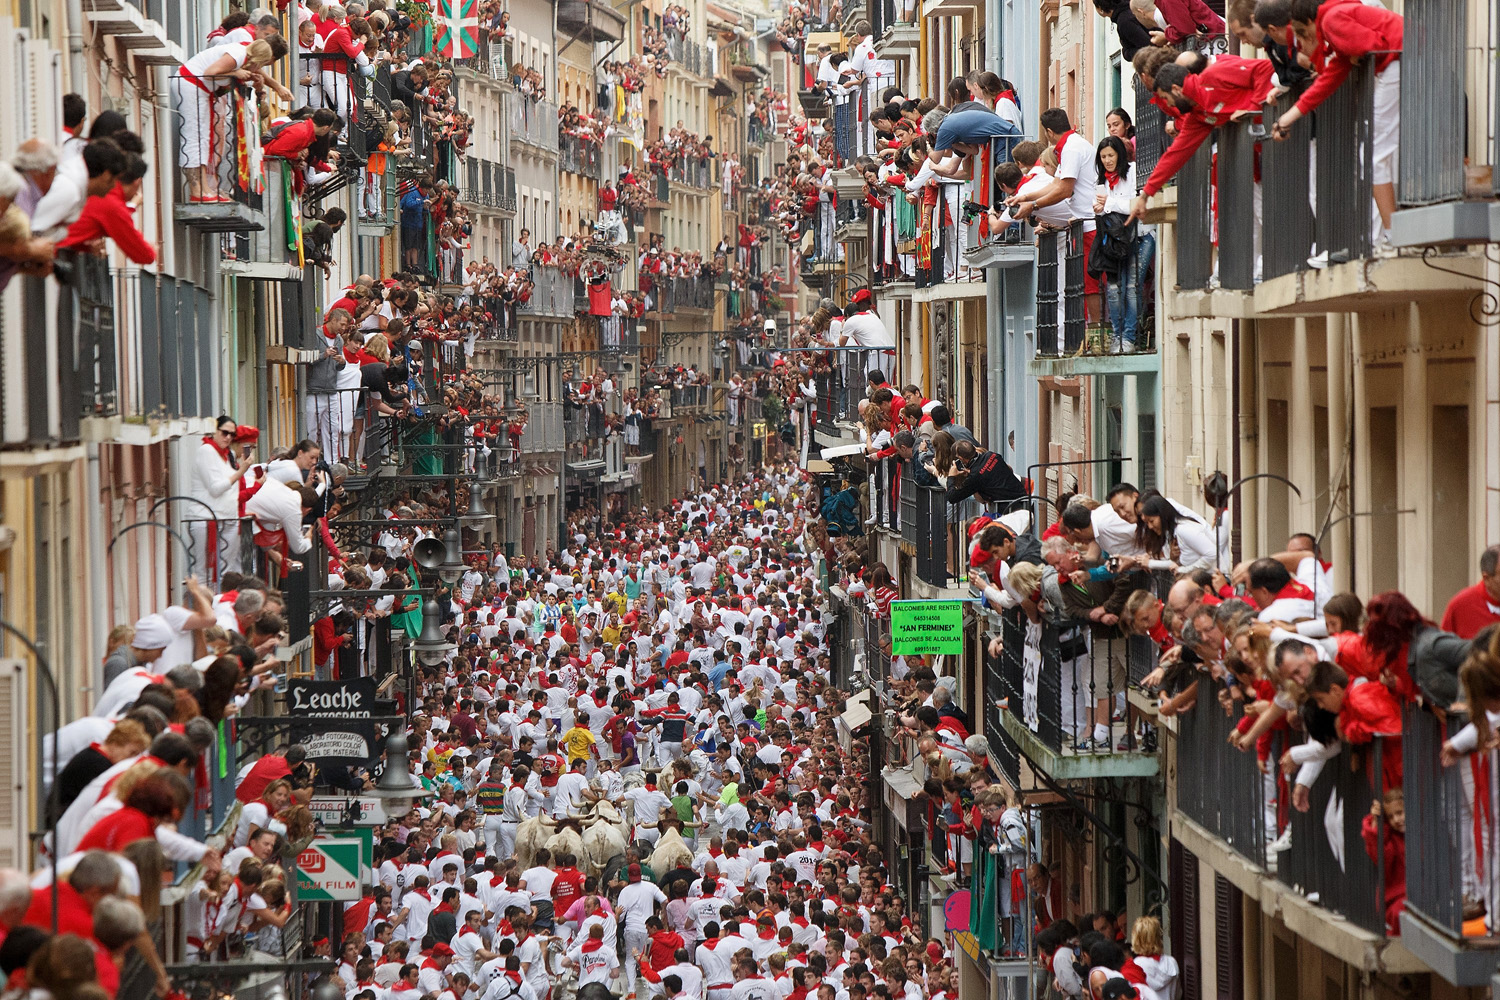 Revellers run with Torrestrella's fighting bulls along the Calle Estafeta during the second day of the San Fermin Running Of The Bulls festival in Pamplona, Spain on July 7, 2014.